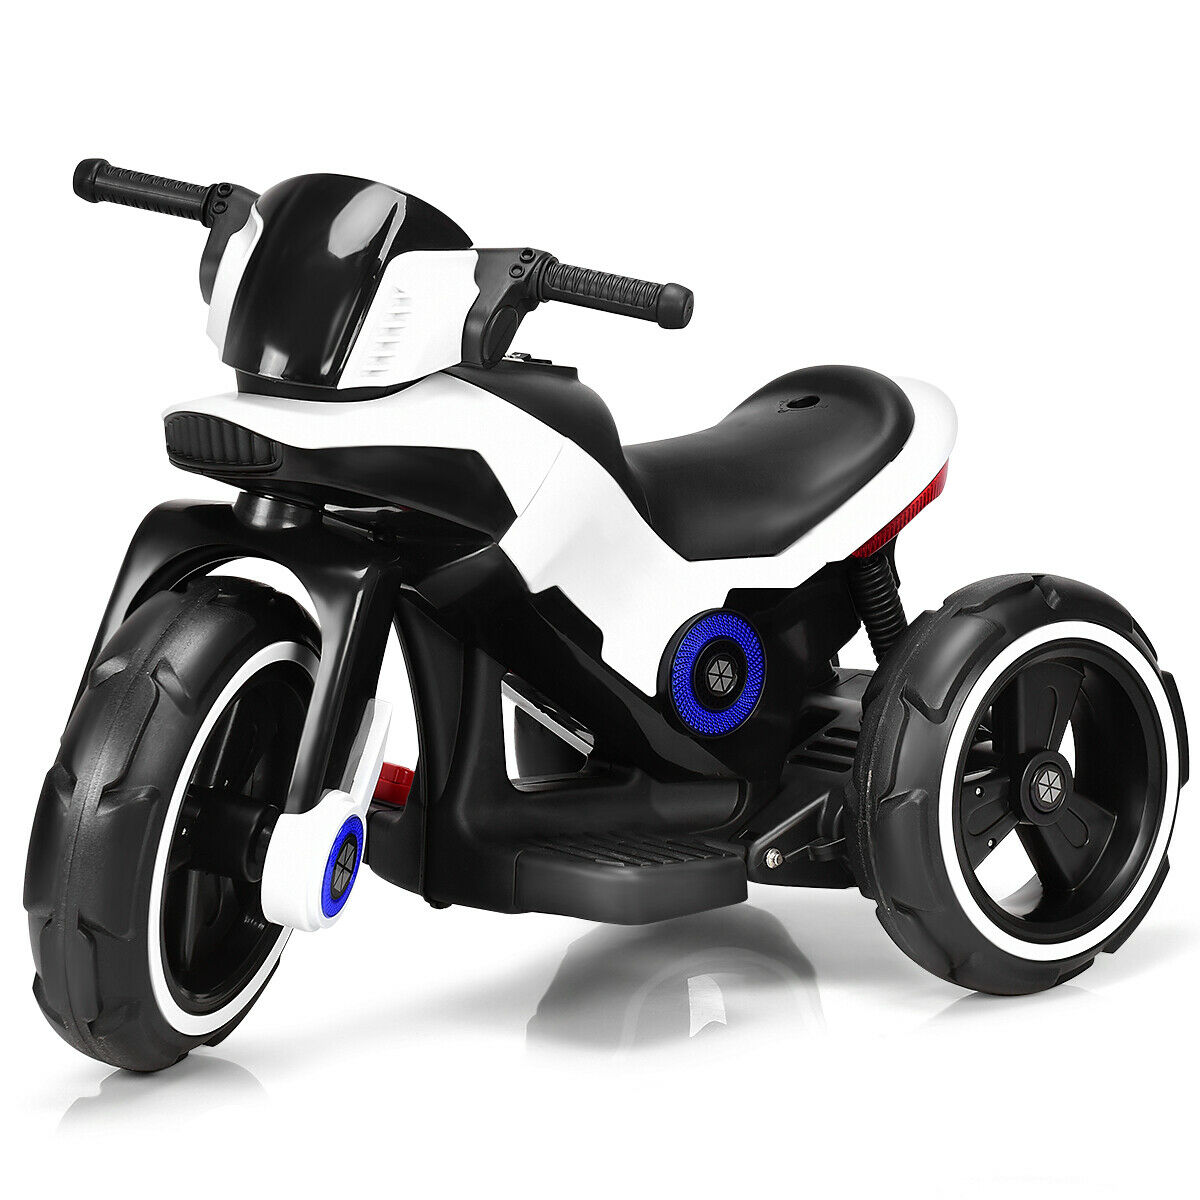 White Kids Ride On Motorcycle 6V Toy Battery Powered Electric 3 Wheel Bicycle